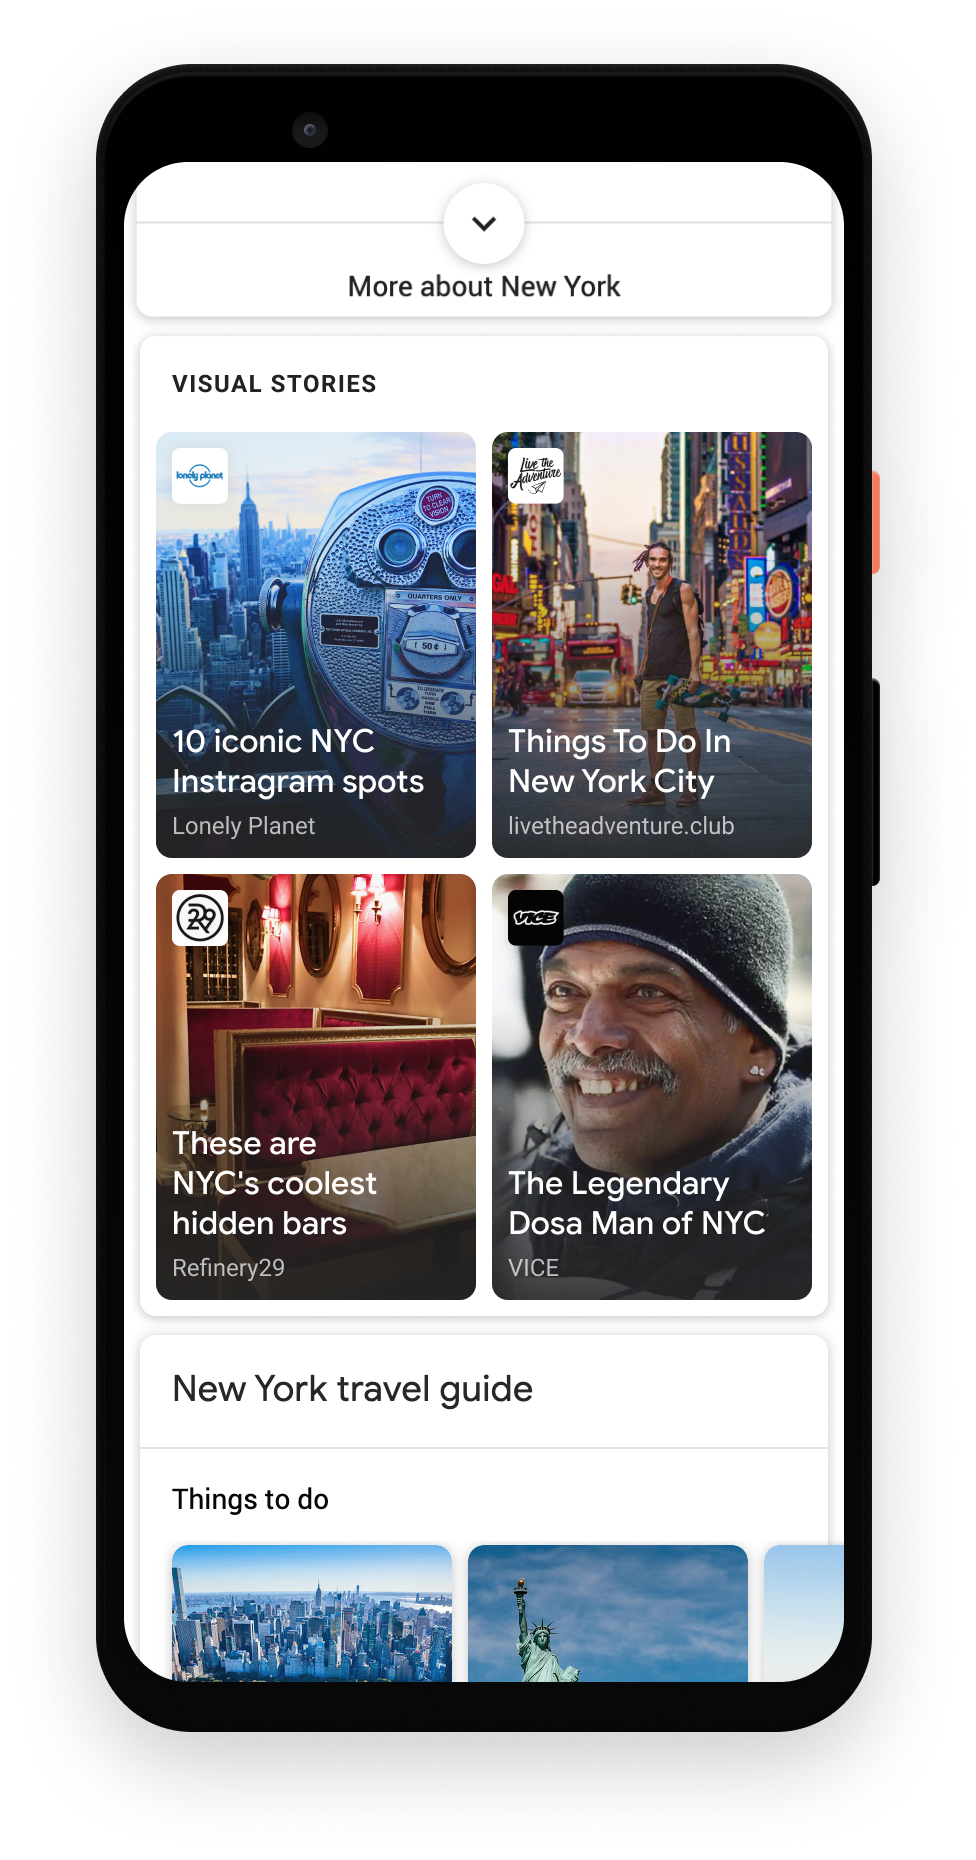 Web Stories as a grid view on Google Search